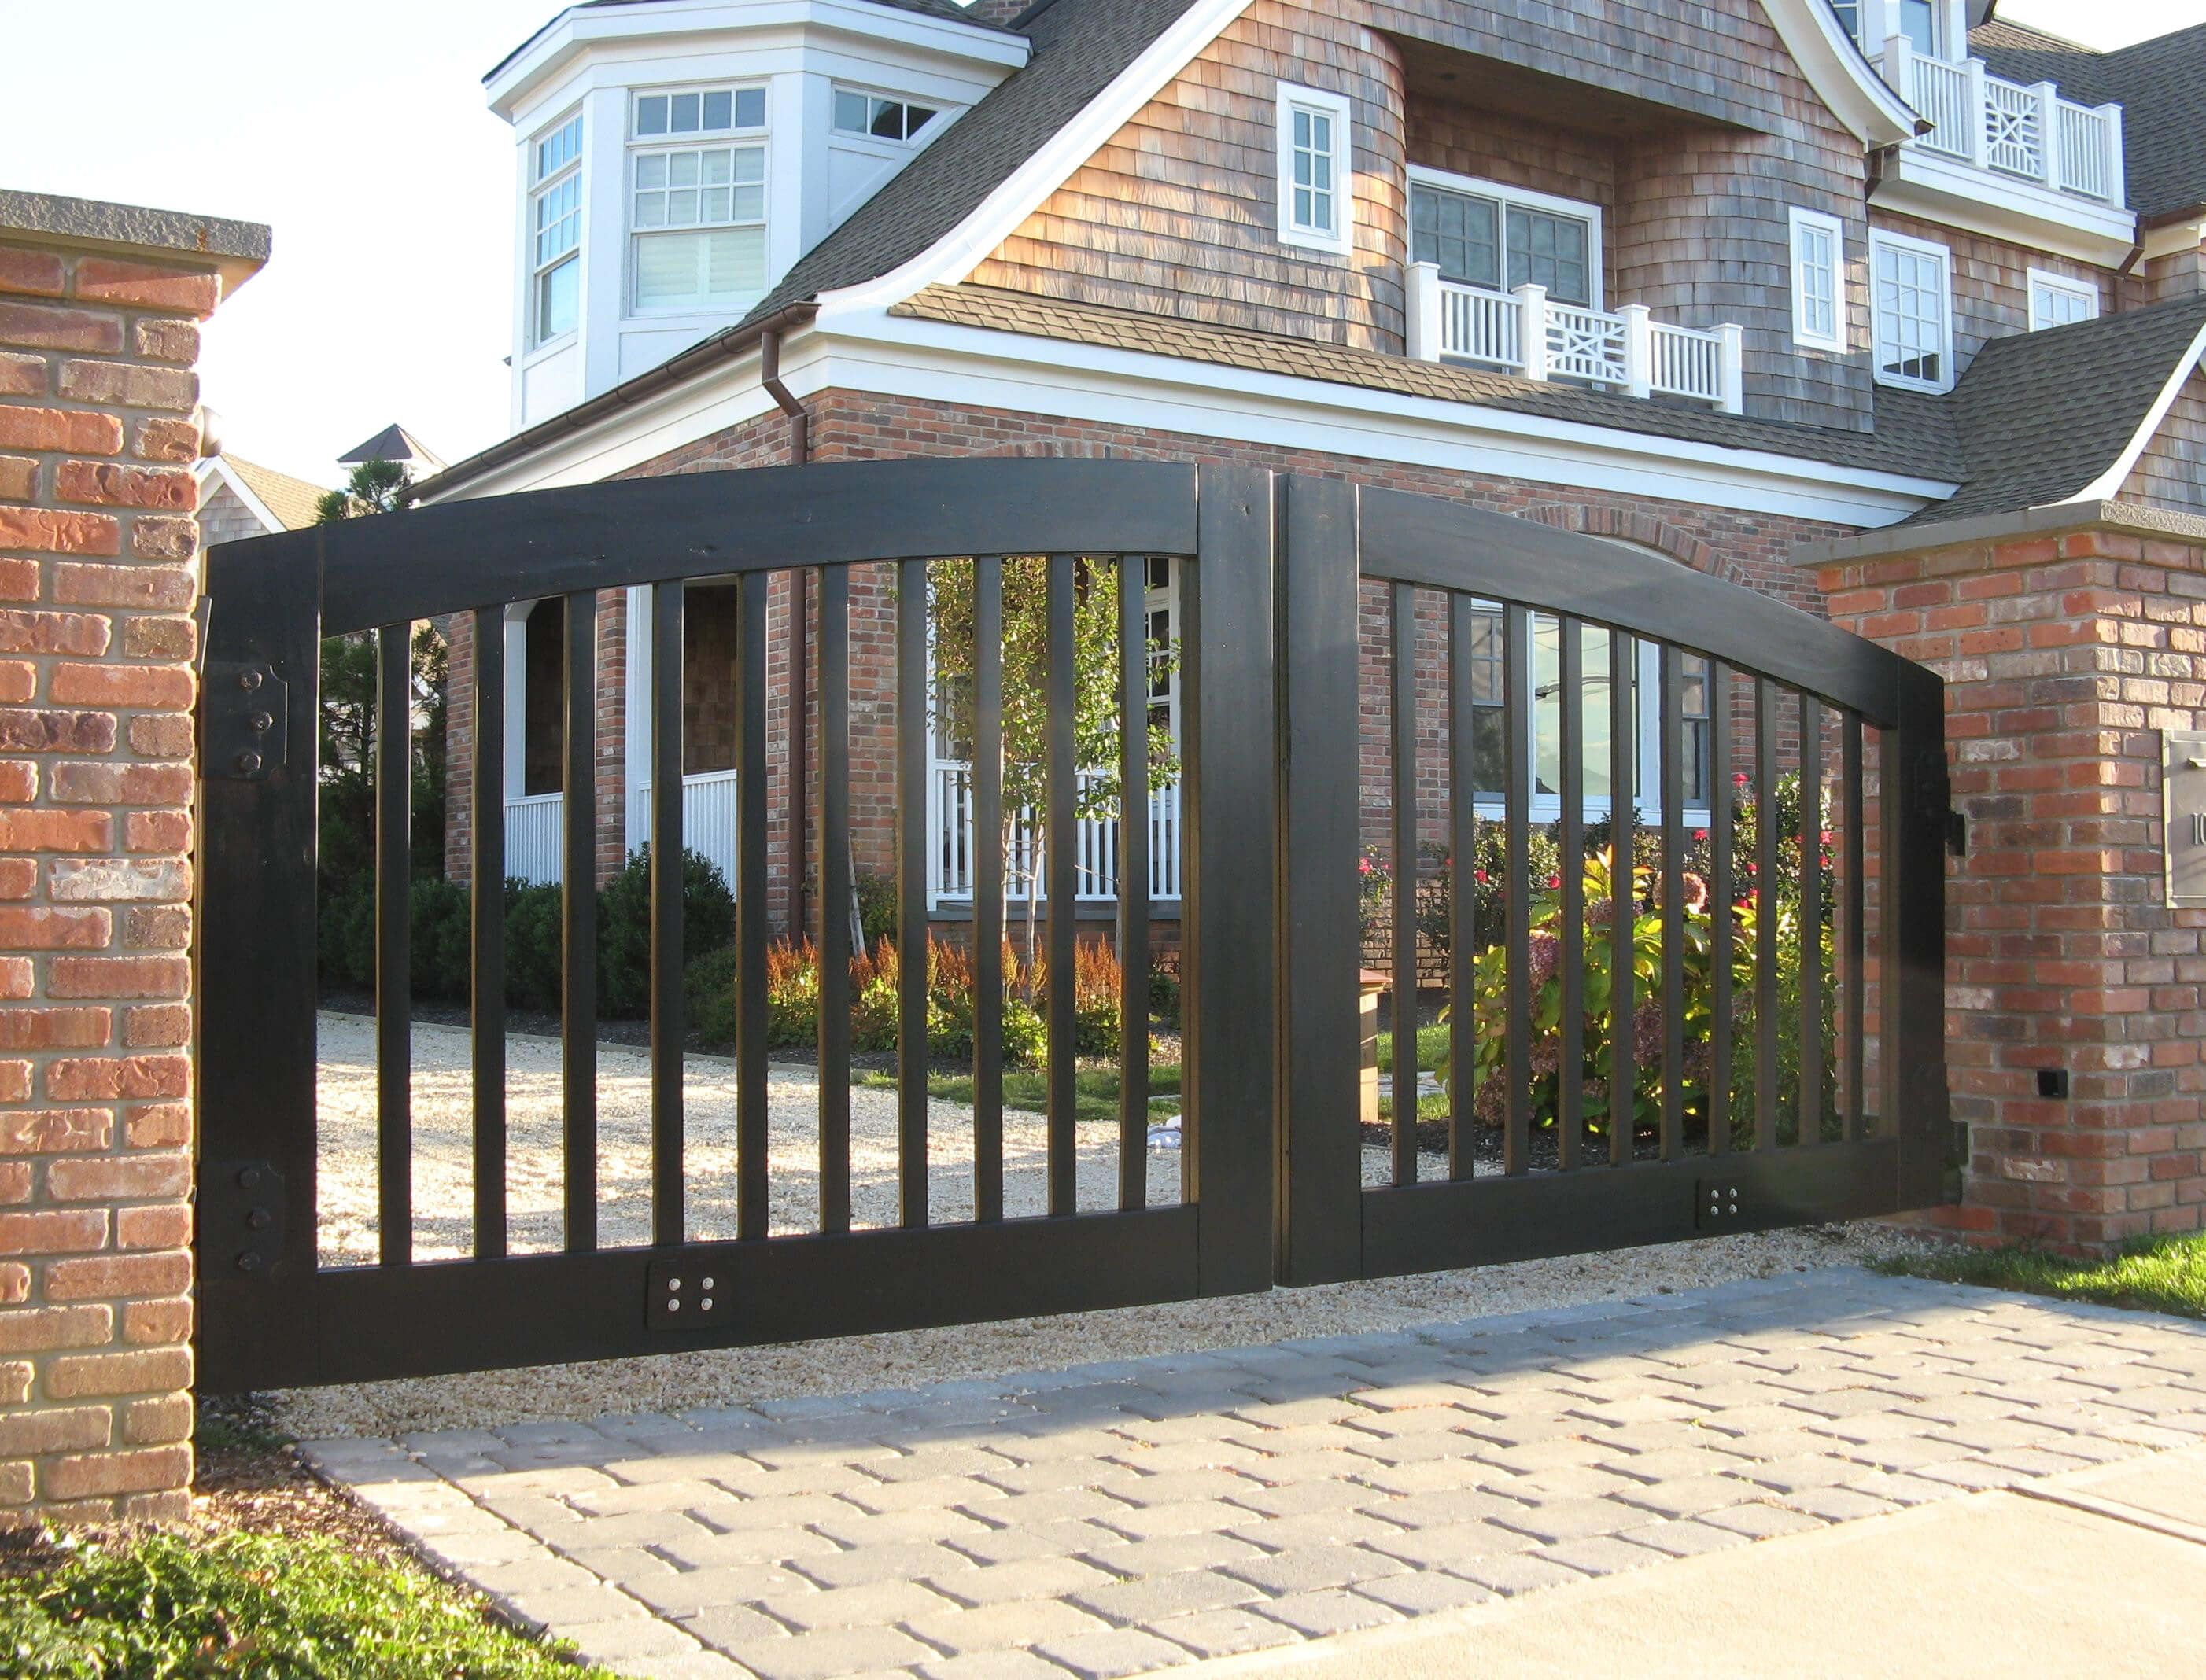 17b1b412630e01d238580069c294ca4f - 26+ Low Budget Modern Simple Gate Design For Small House PNG